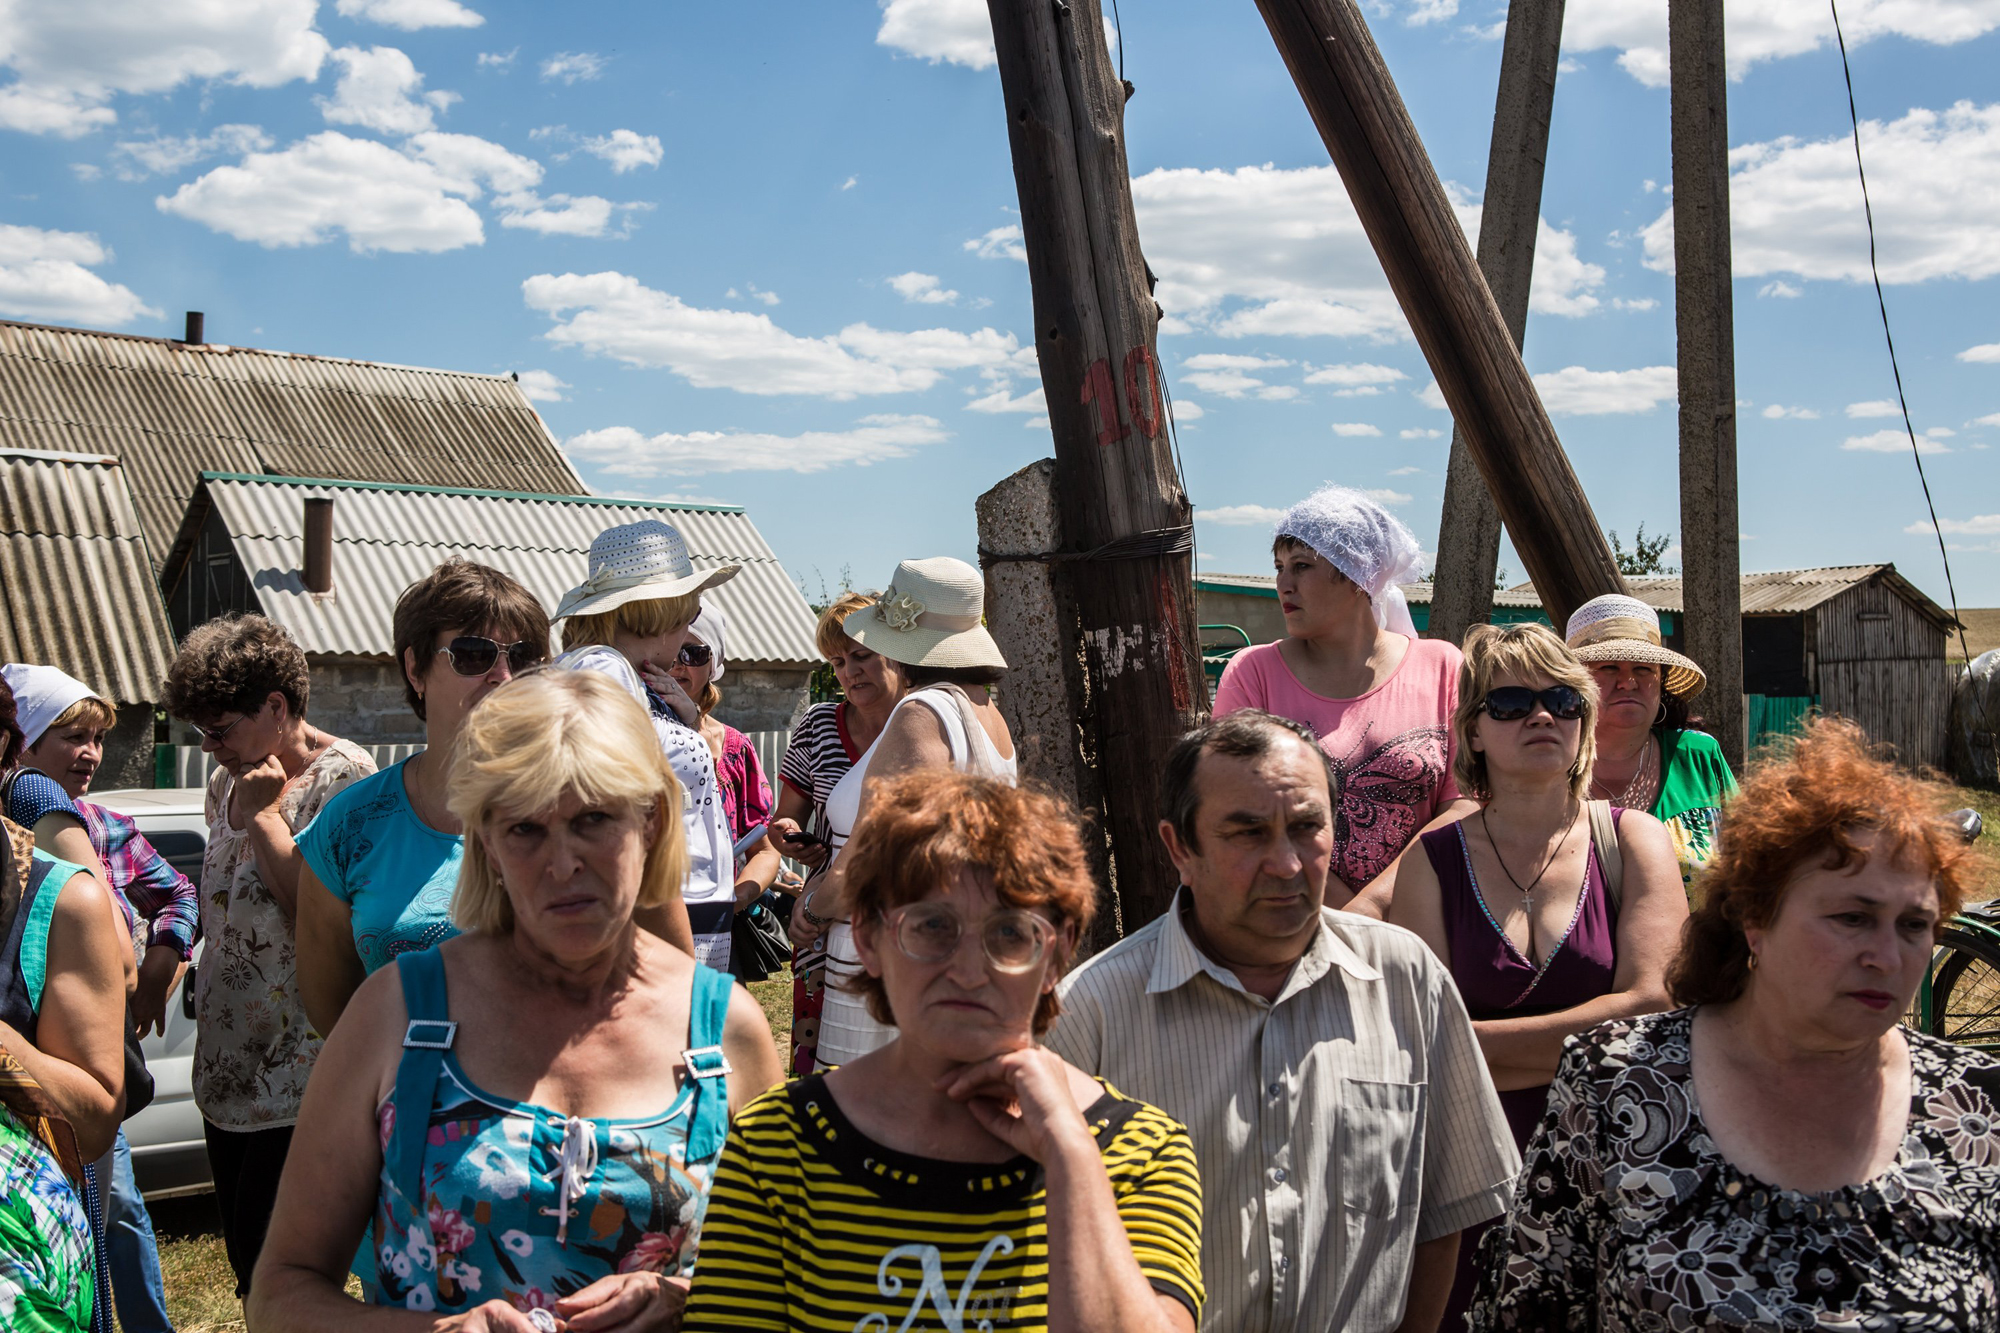 Local residents gather to watch as the bodies of victims of Malaysia Airlines Flight 17 are removed from the scene of the crash on July 21, 2014 in Grabovo, Ukraine.